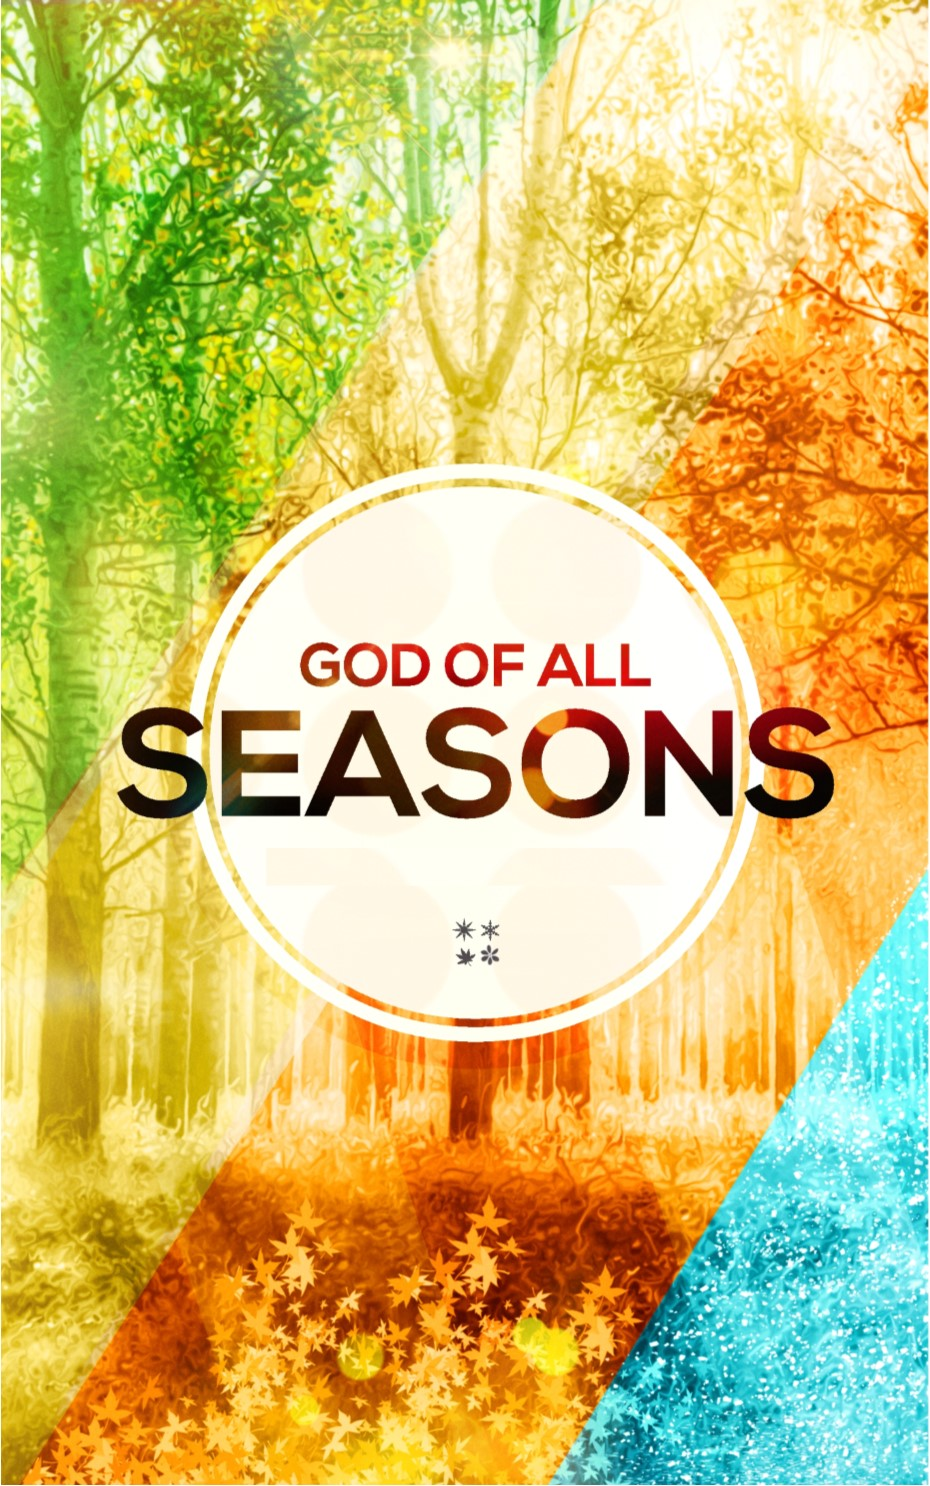 seasons bulletin 2.jpg